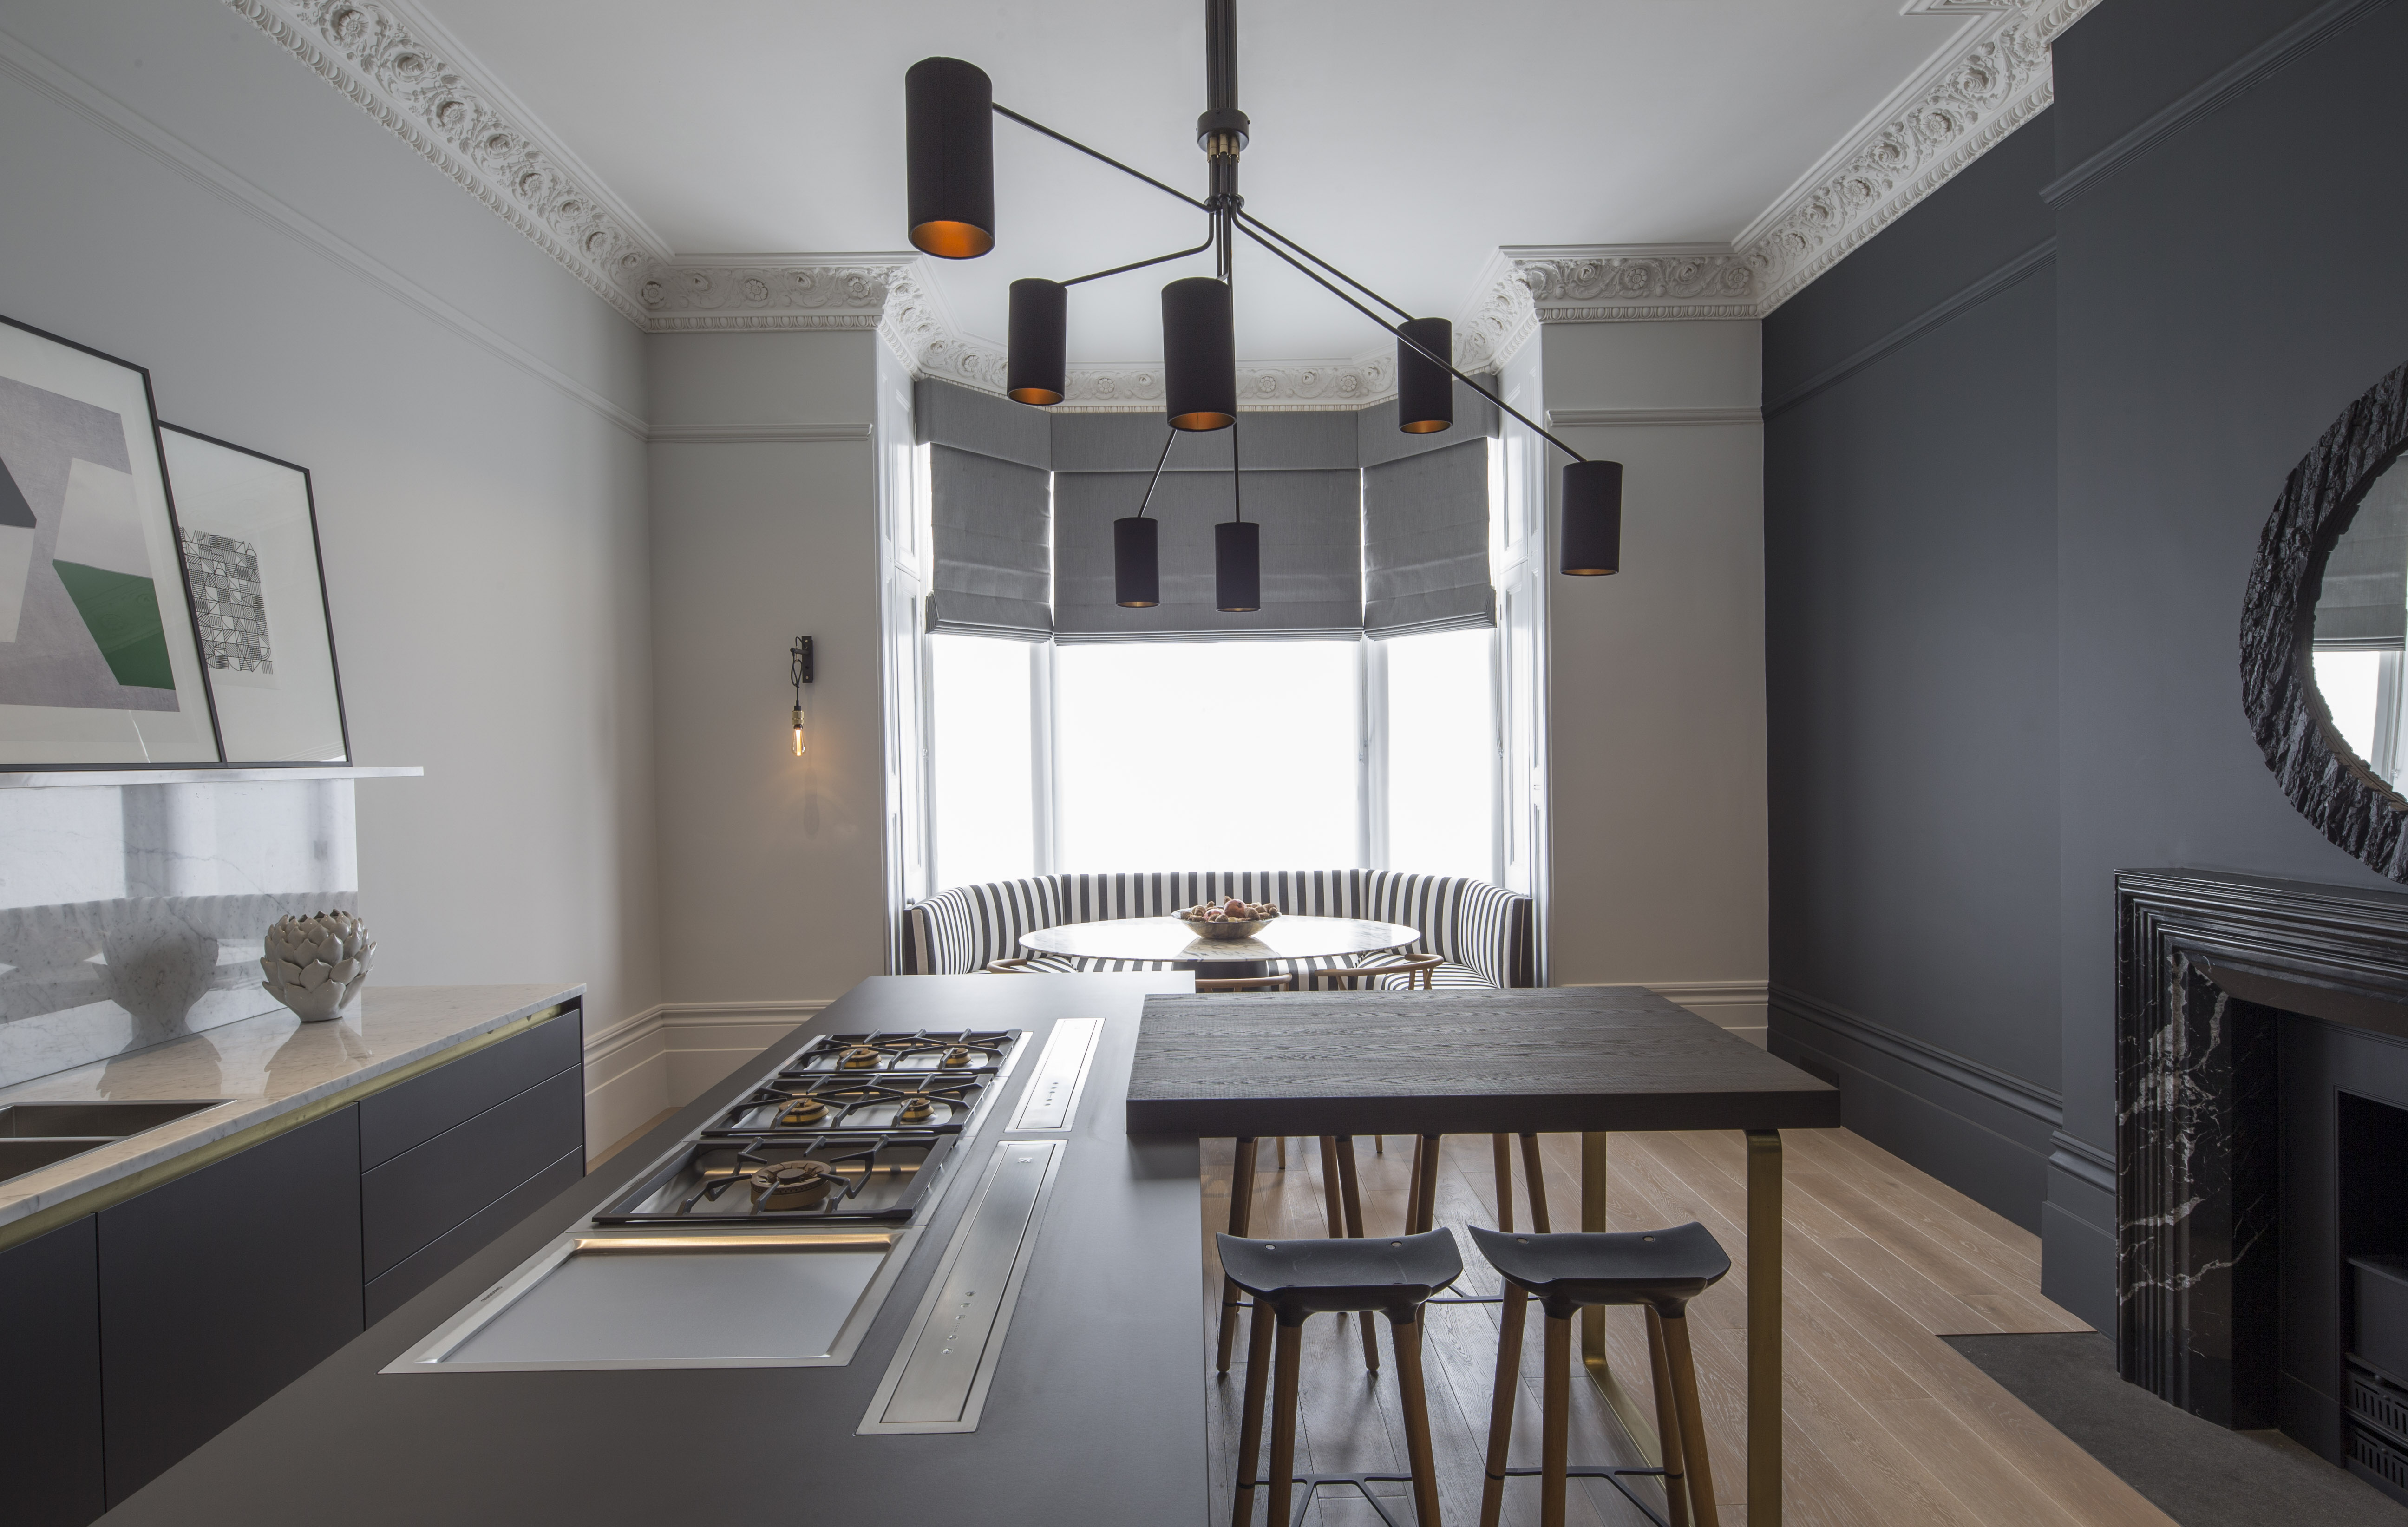 contemporary industrial kitchen with bay window and pendant lighting above kitchen island